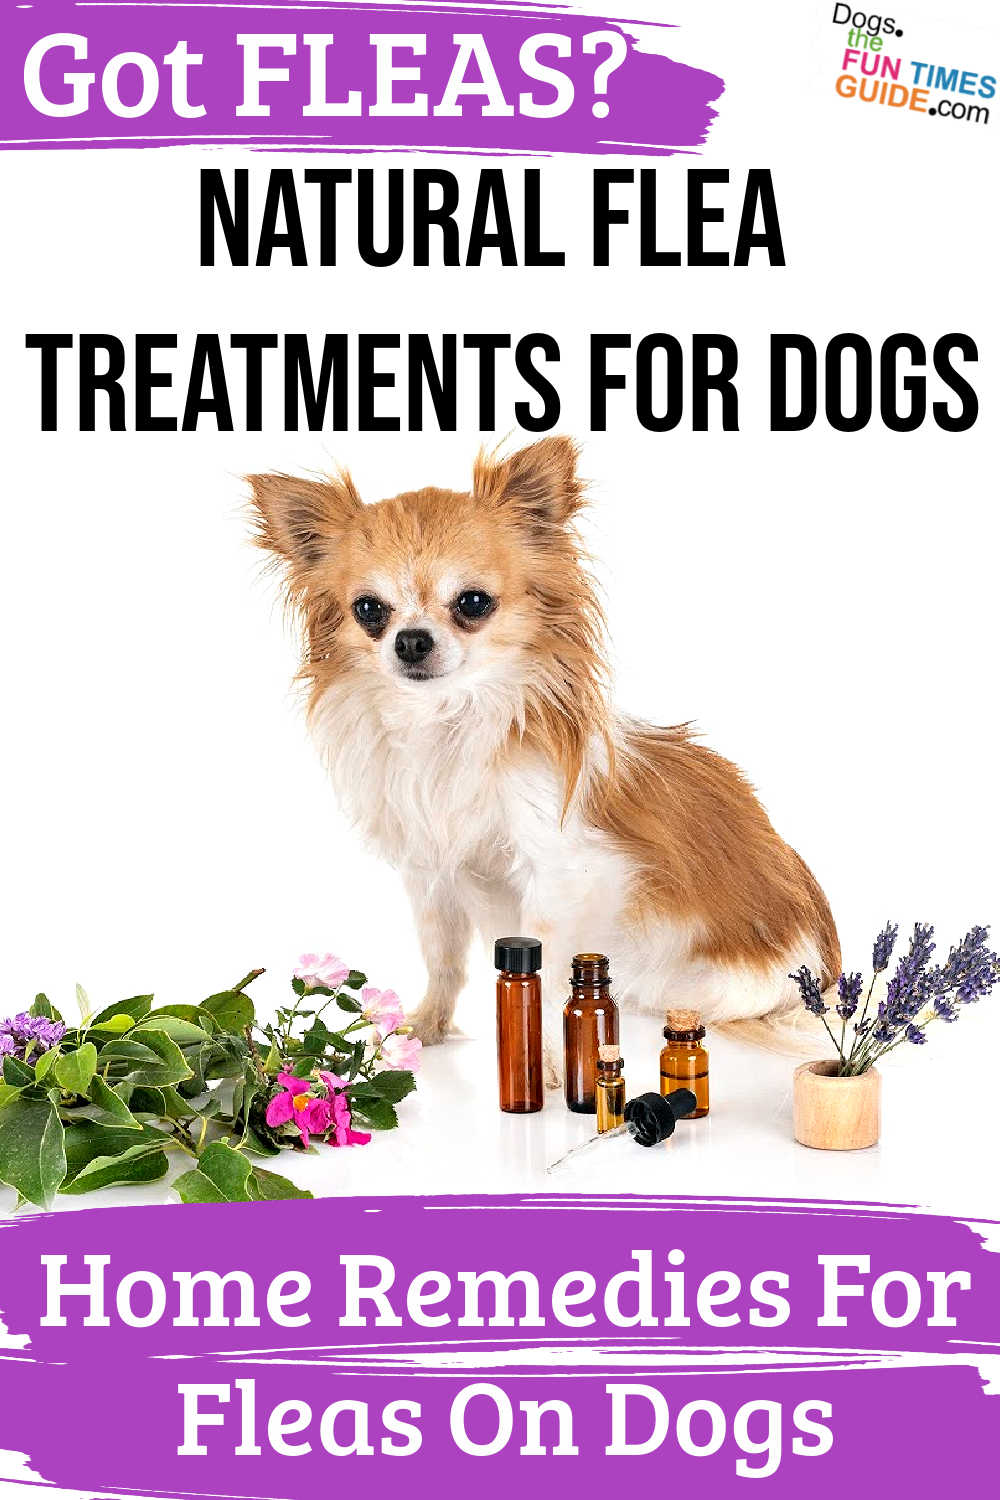 Best Home Remedies For Fleas On Dogs: Which Natural Flea Treatment For Dogs Is Your Favorite?